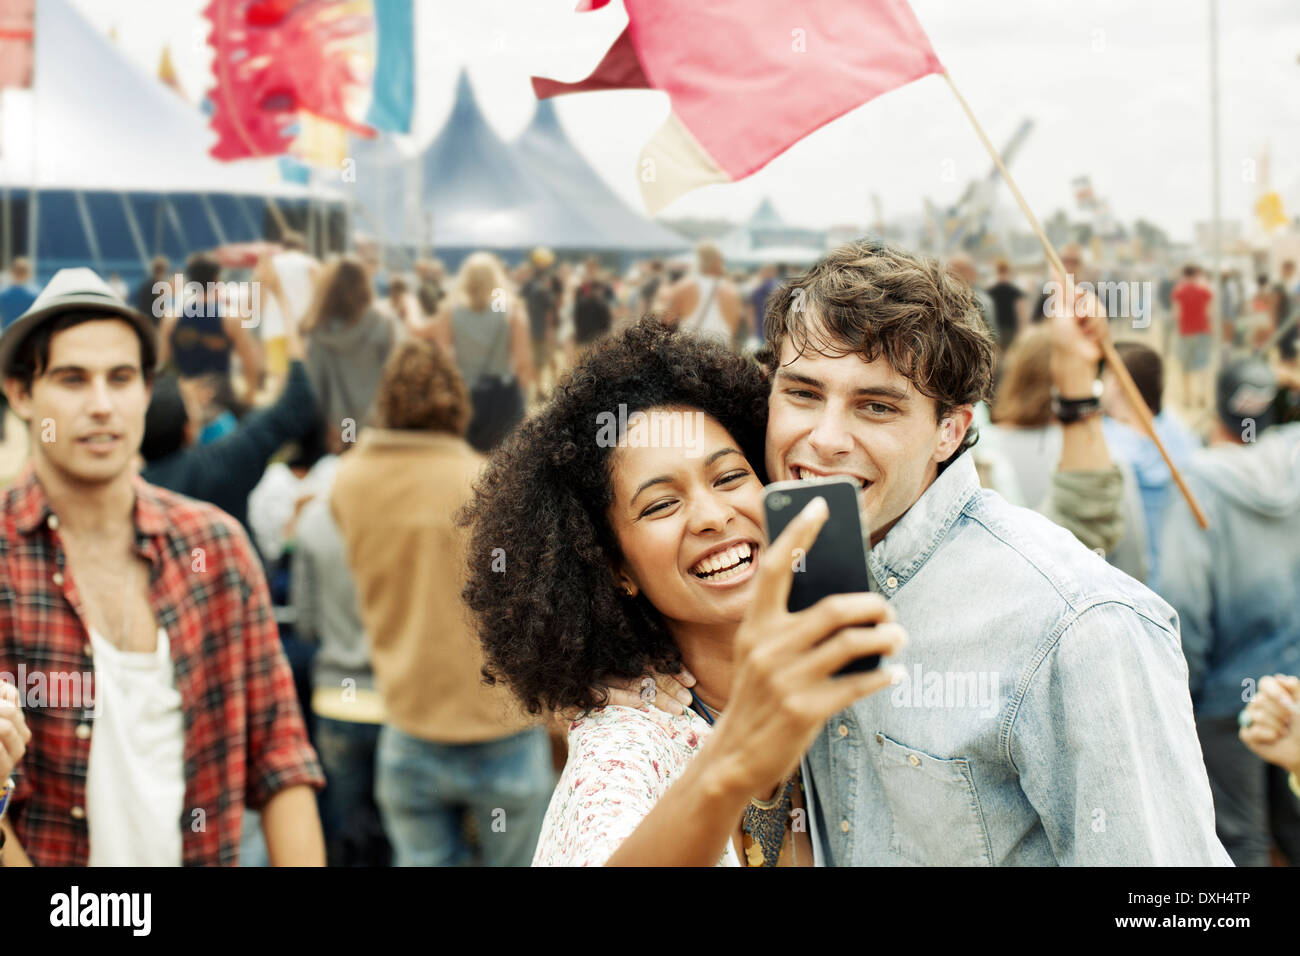 Couple taking self-portrait with camera phone at music festival - Stock Image